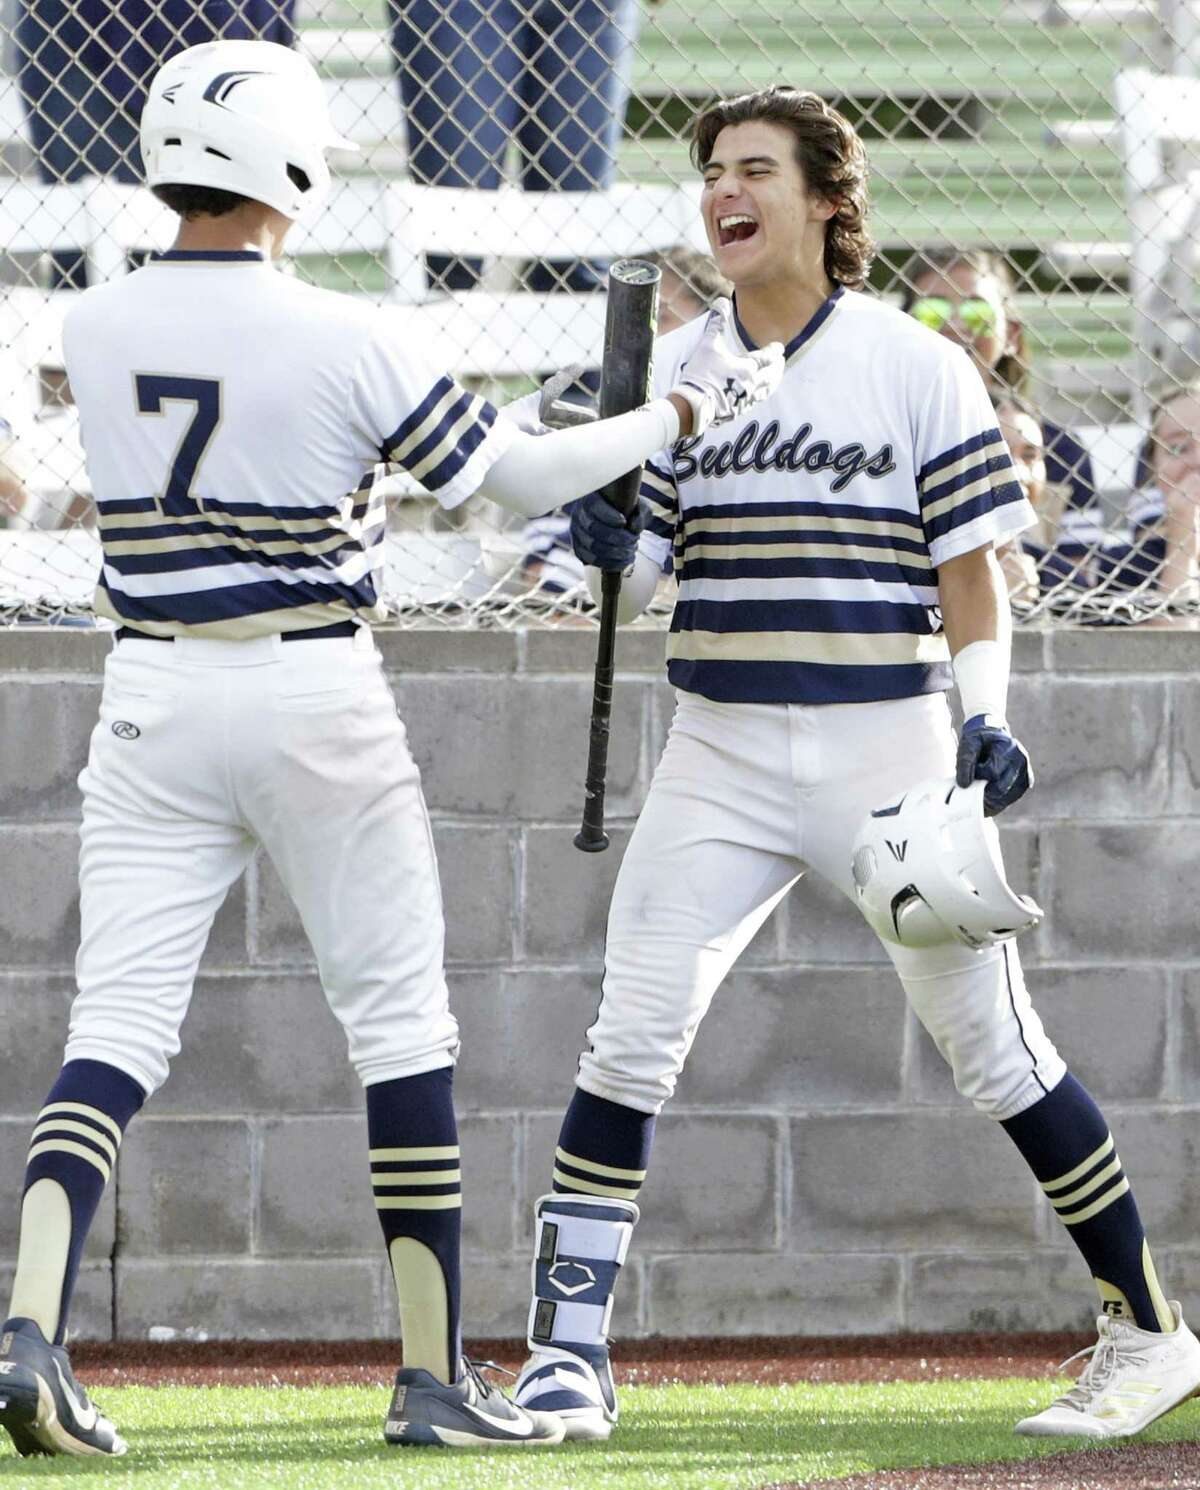 Normar Garcia, right, celebrates his two run homer in the fourth inning as the bats come alive for the Bulldogs who beat Reagan 9-8 in game 2 of the Class 6A Regional Semifinals at Cabaniss Field in Corpus Christi on May 24, 2019.